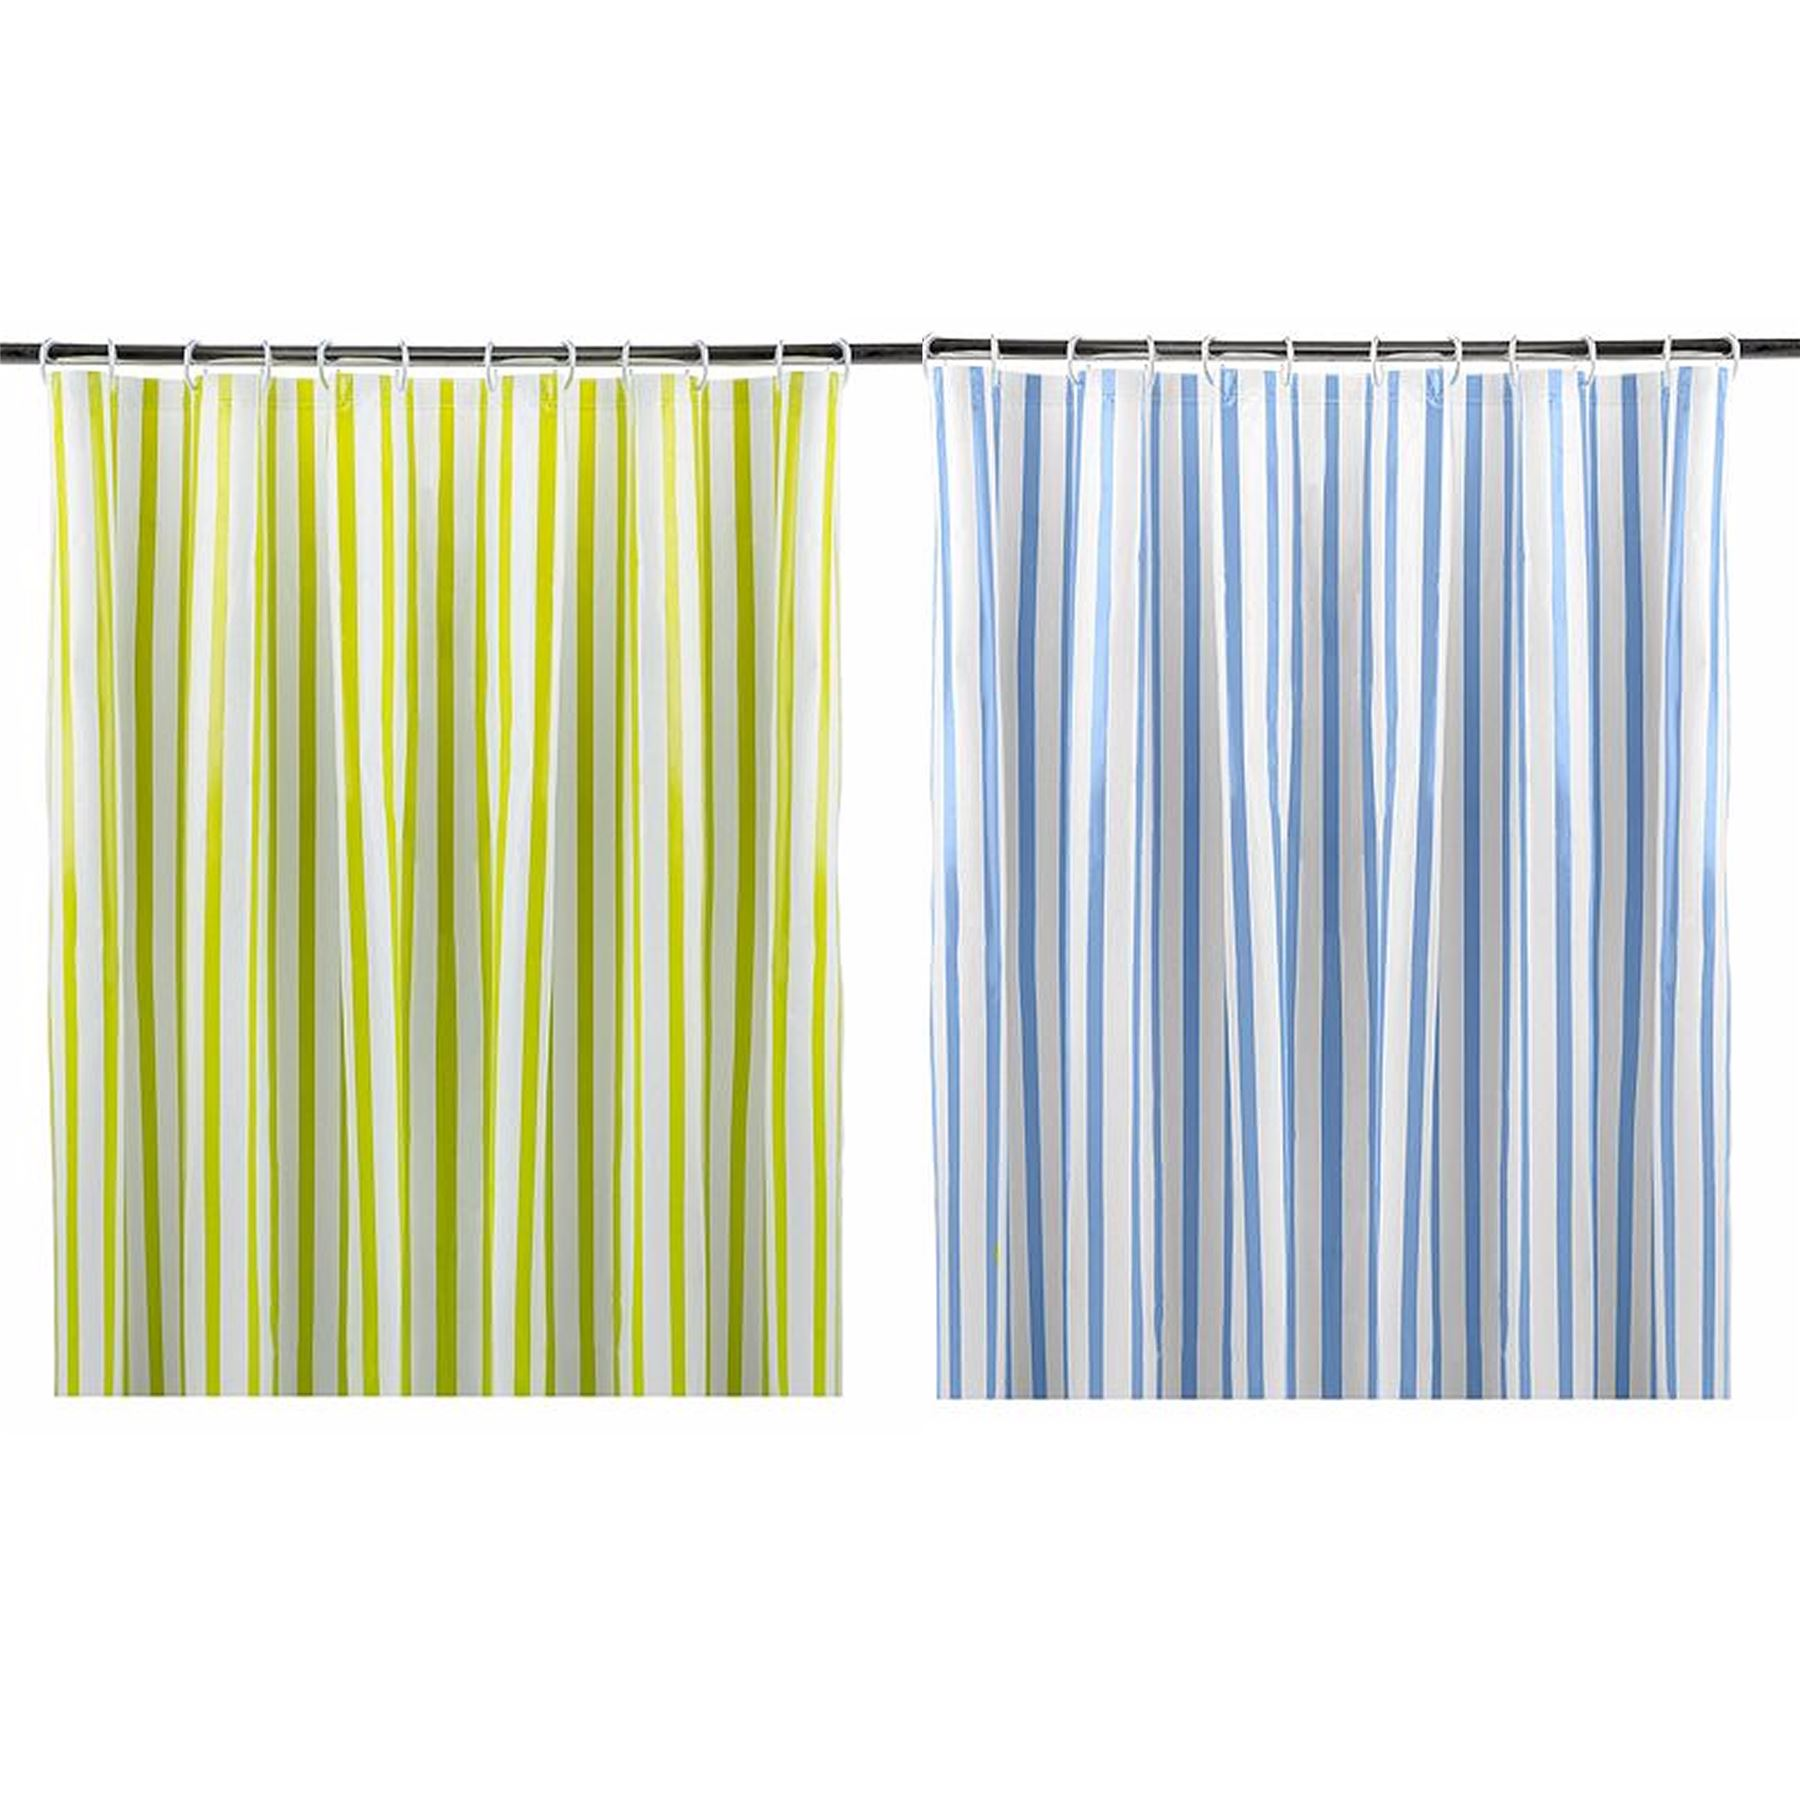 Details About Lime Green Or Blue Retro Striped Shower Curtains 180x180cm Eyelet Ring Top